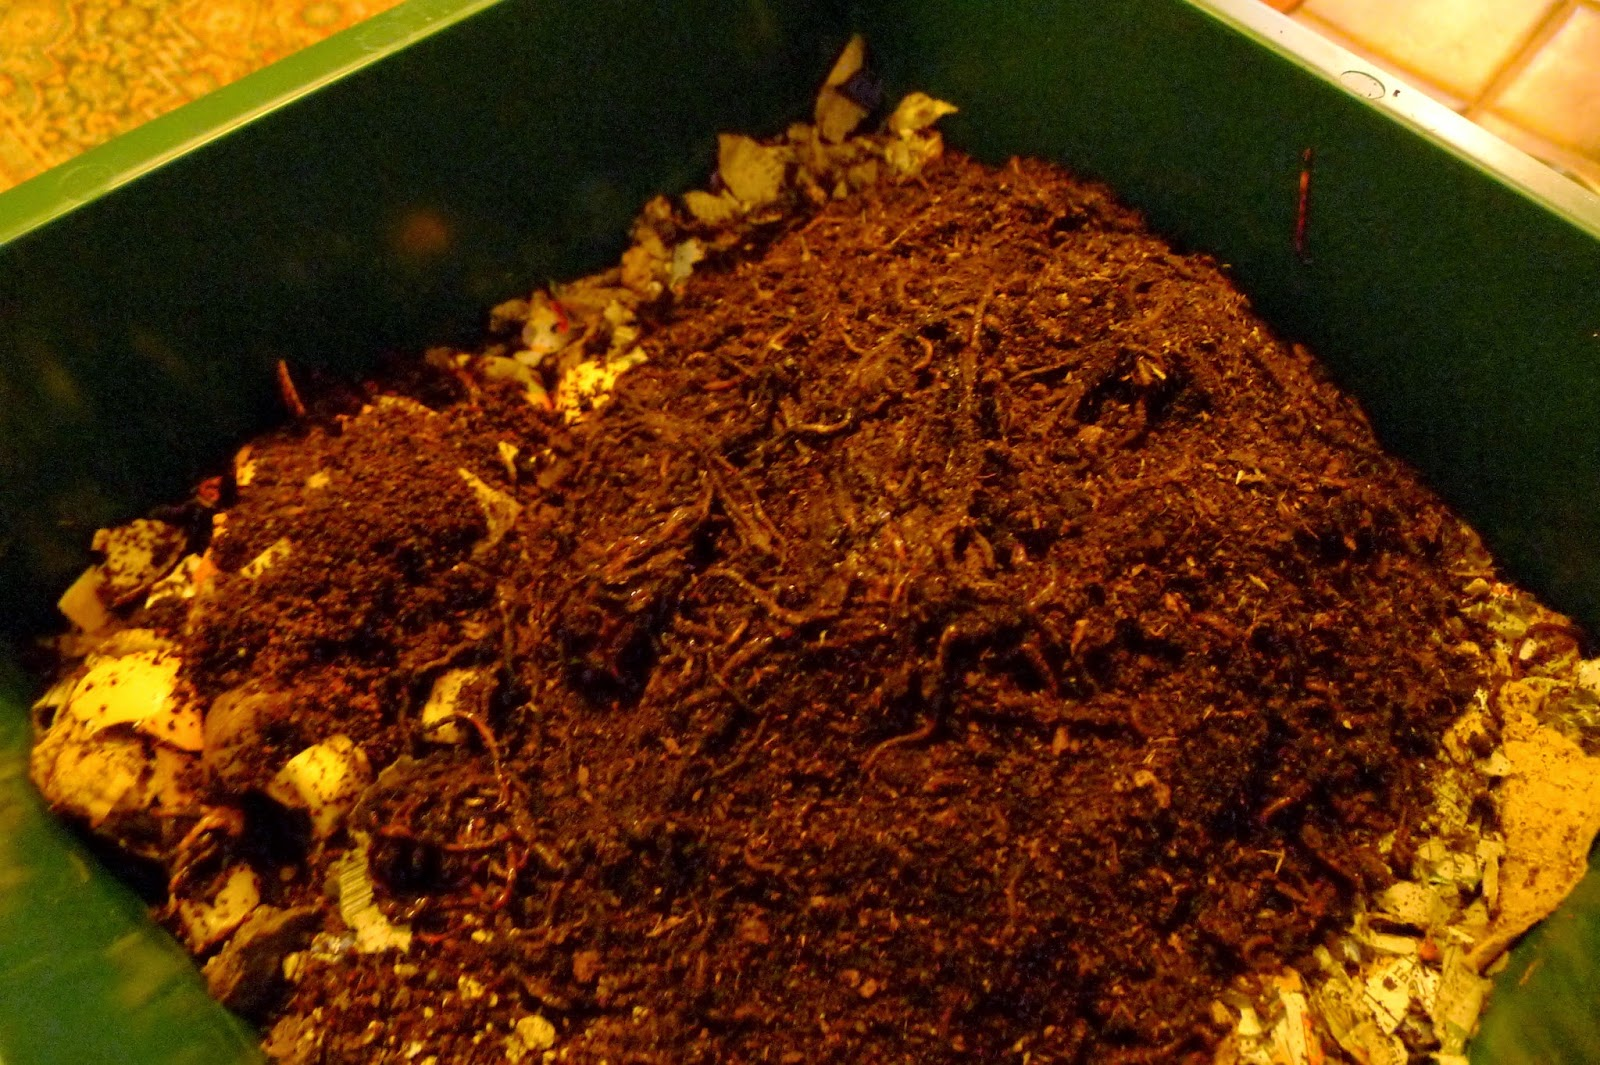 Vermiculture: a compost solution for urban gardens